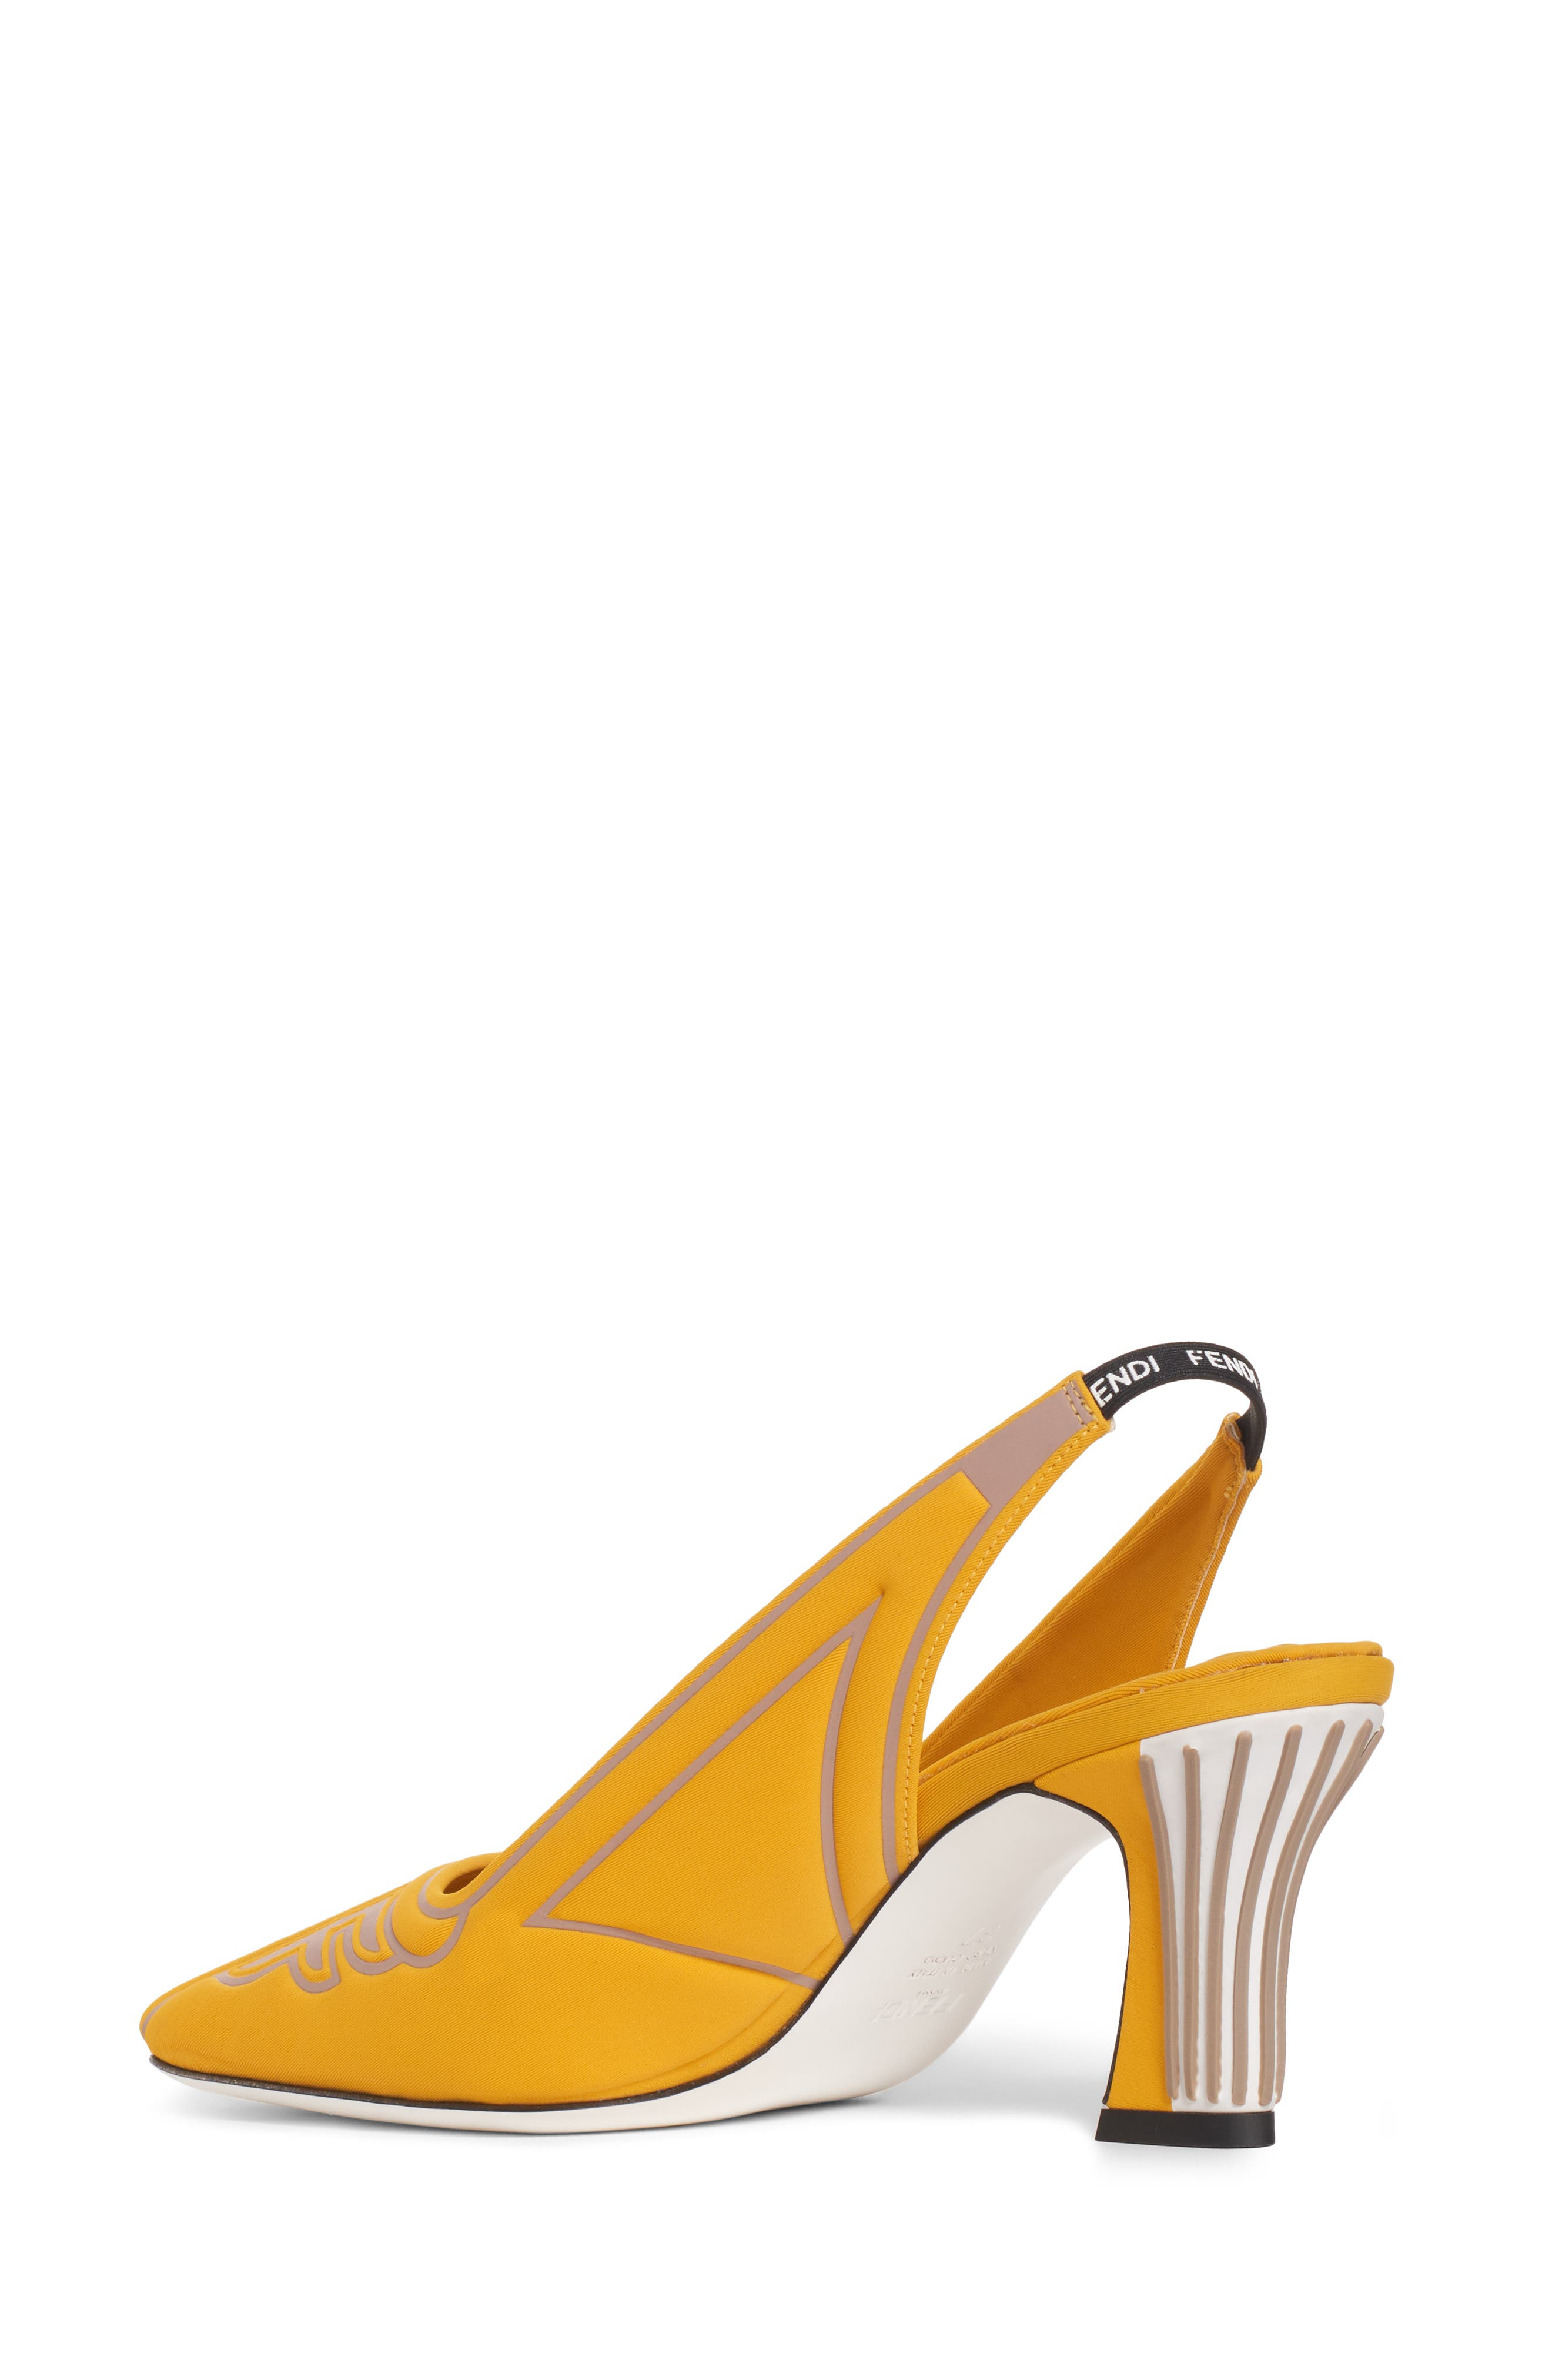 FENDI, FFreedom Logo Slingback Pump, Alternate thumbnail 2, color, YELLOW